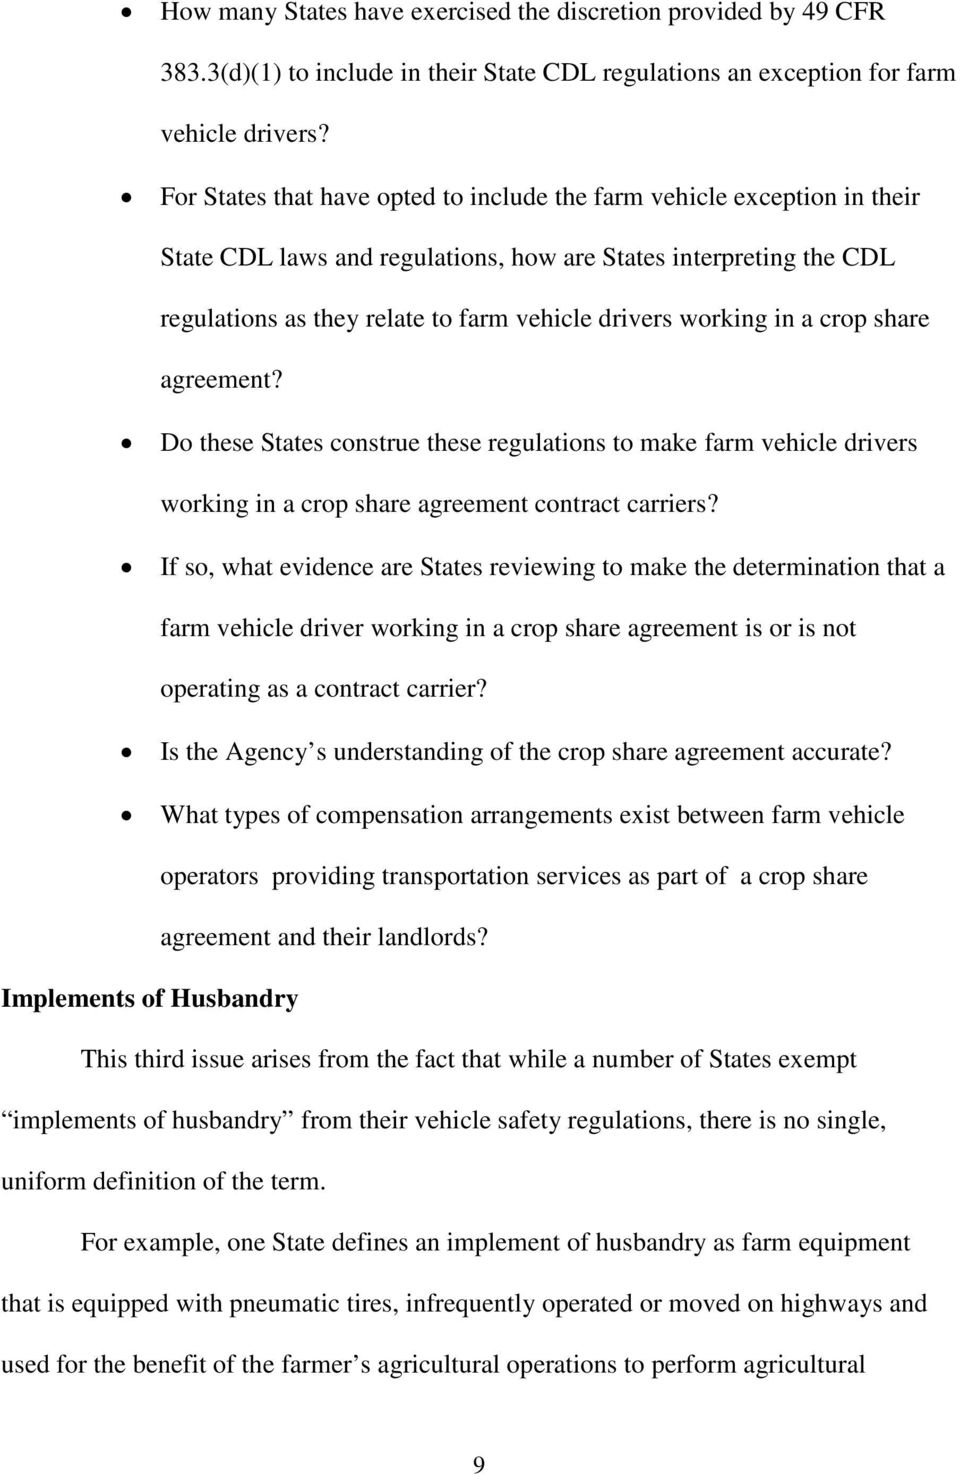 working in a crop share agreement? Do these States construe these regulations to make farm vehicle drivers working in a crop share agreement contract carriers?